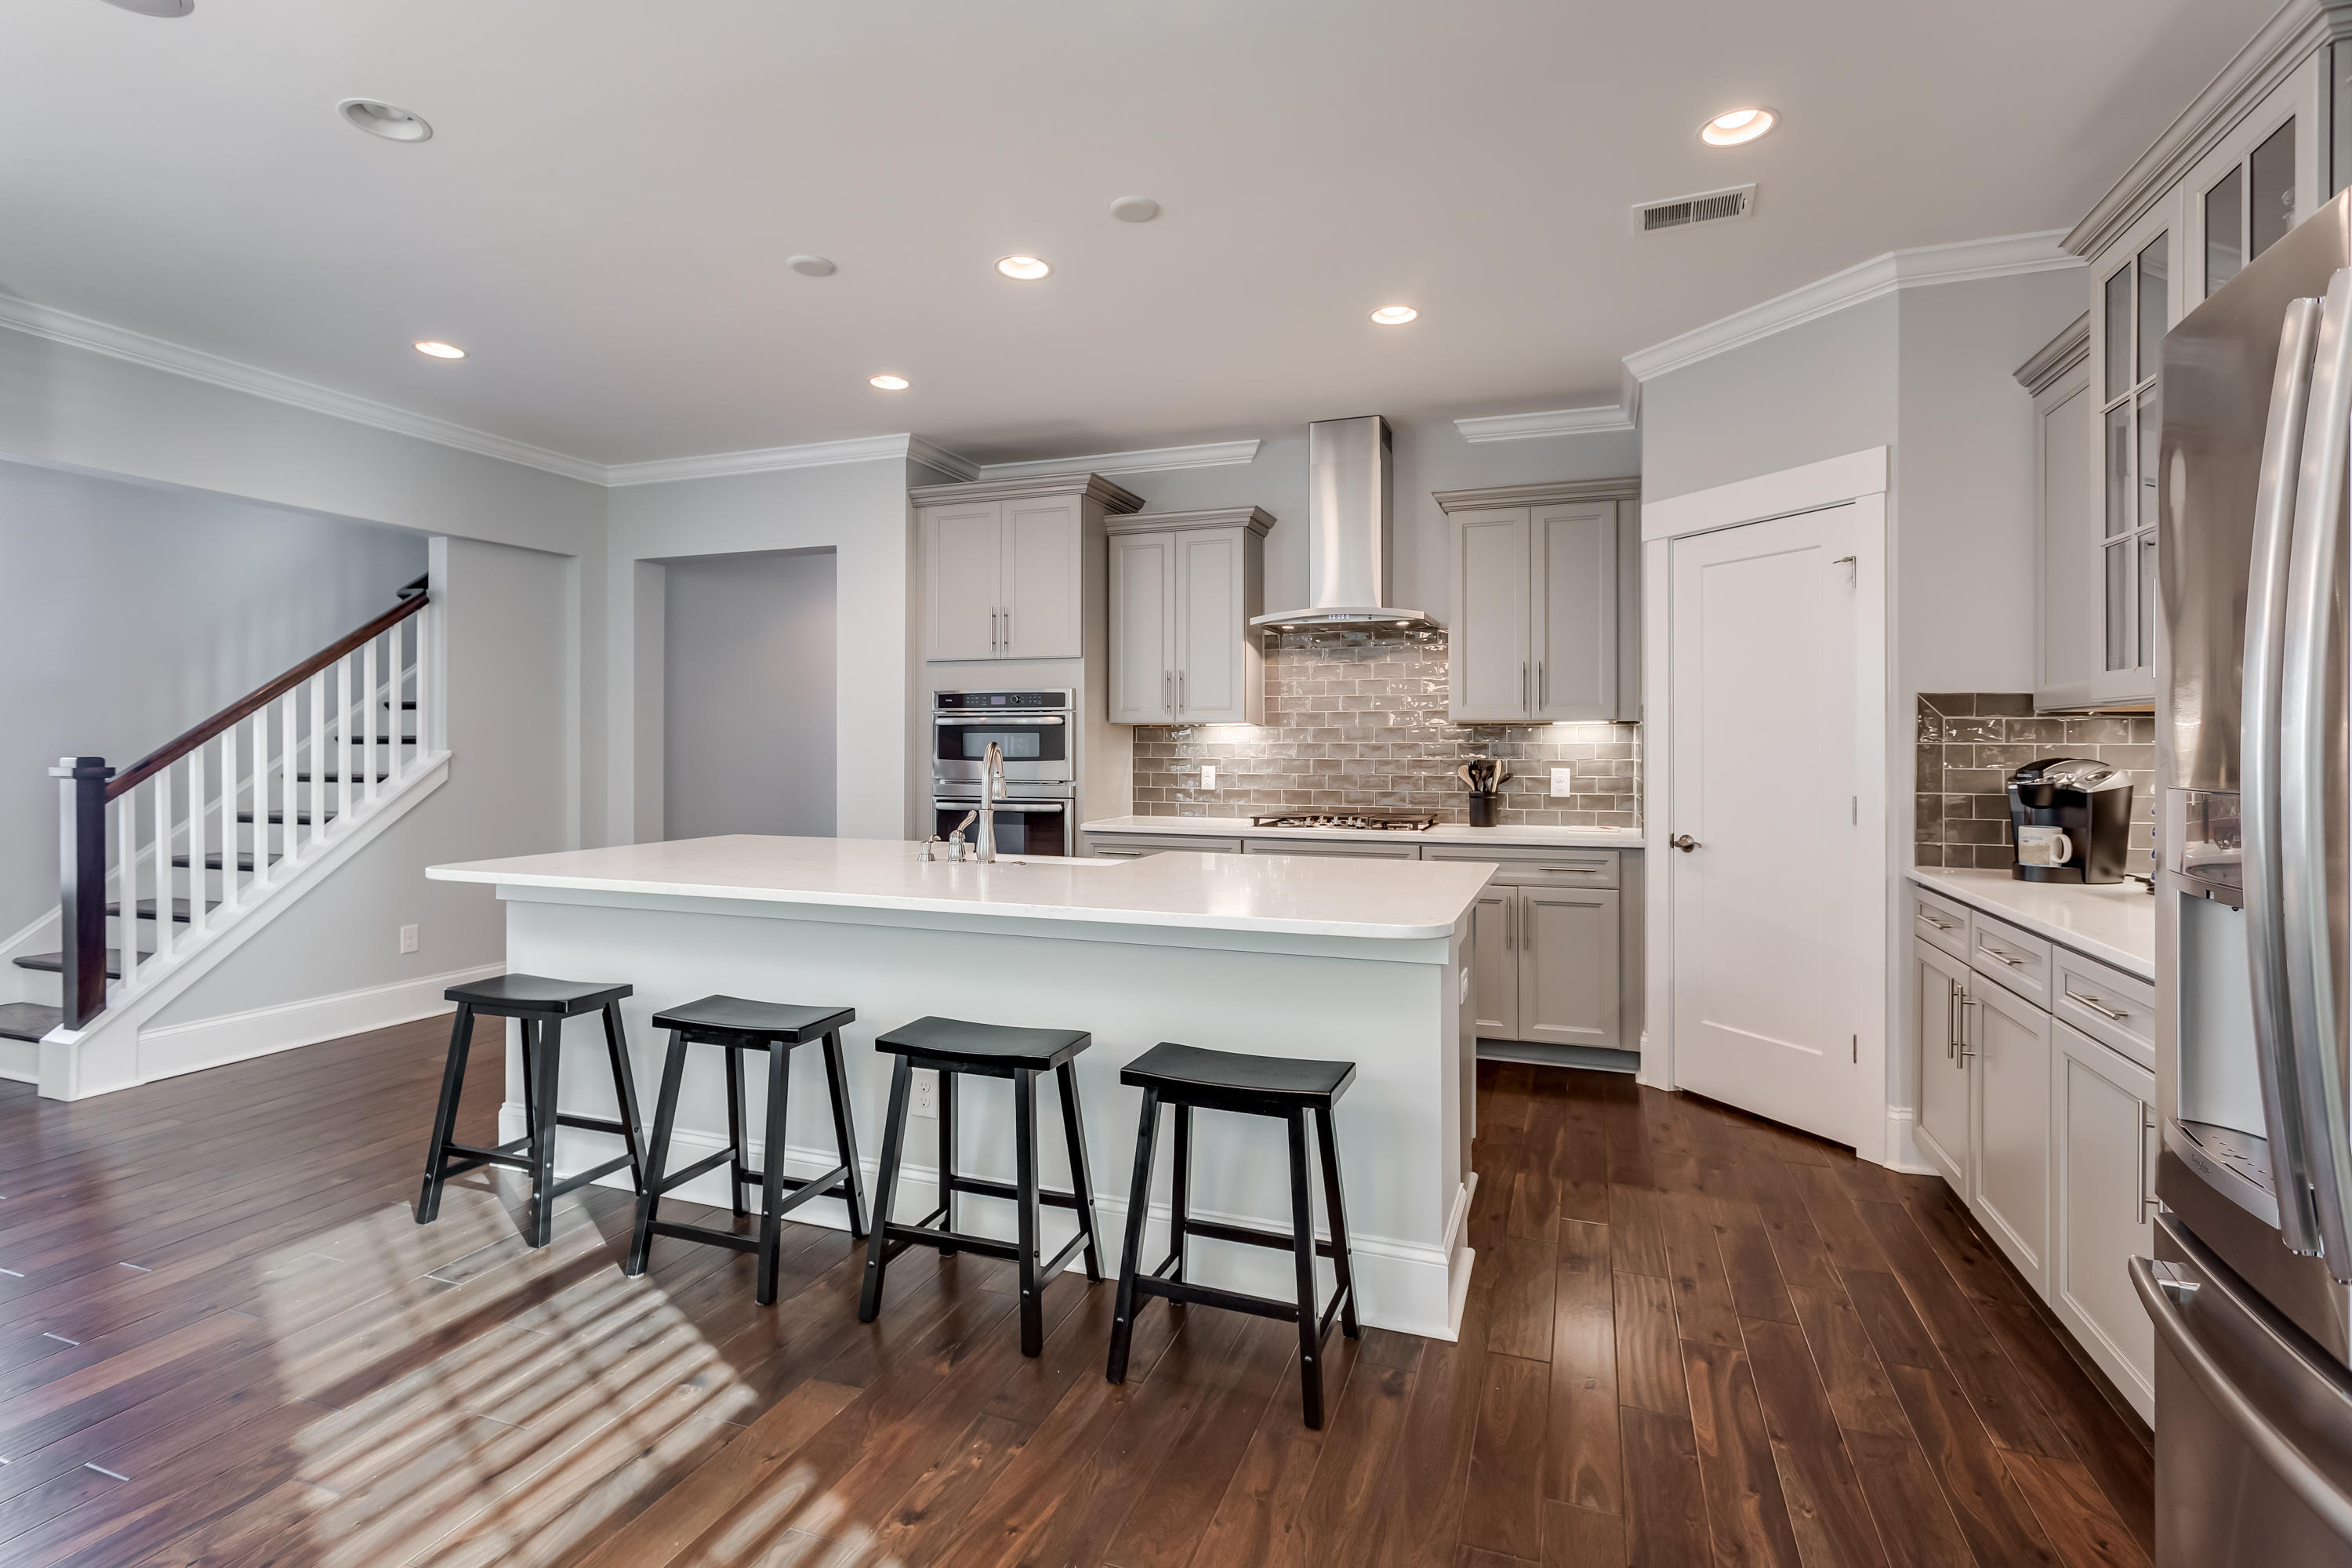 The Village at Stiles Point Homes For Sale - 849 Shutes Folly, Charleston, SC - 6